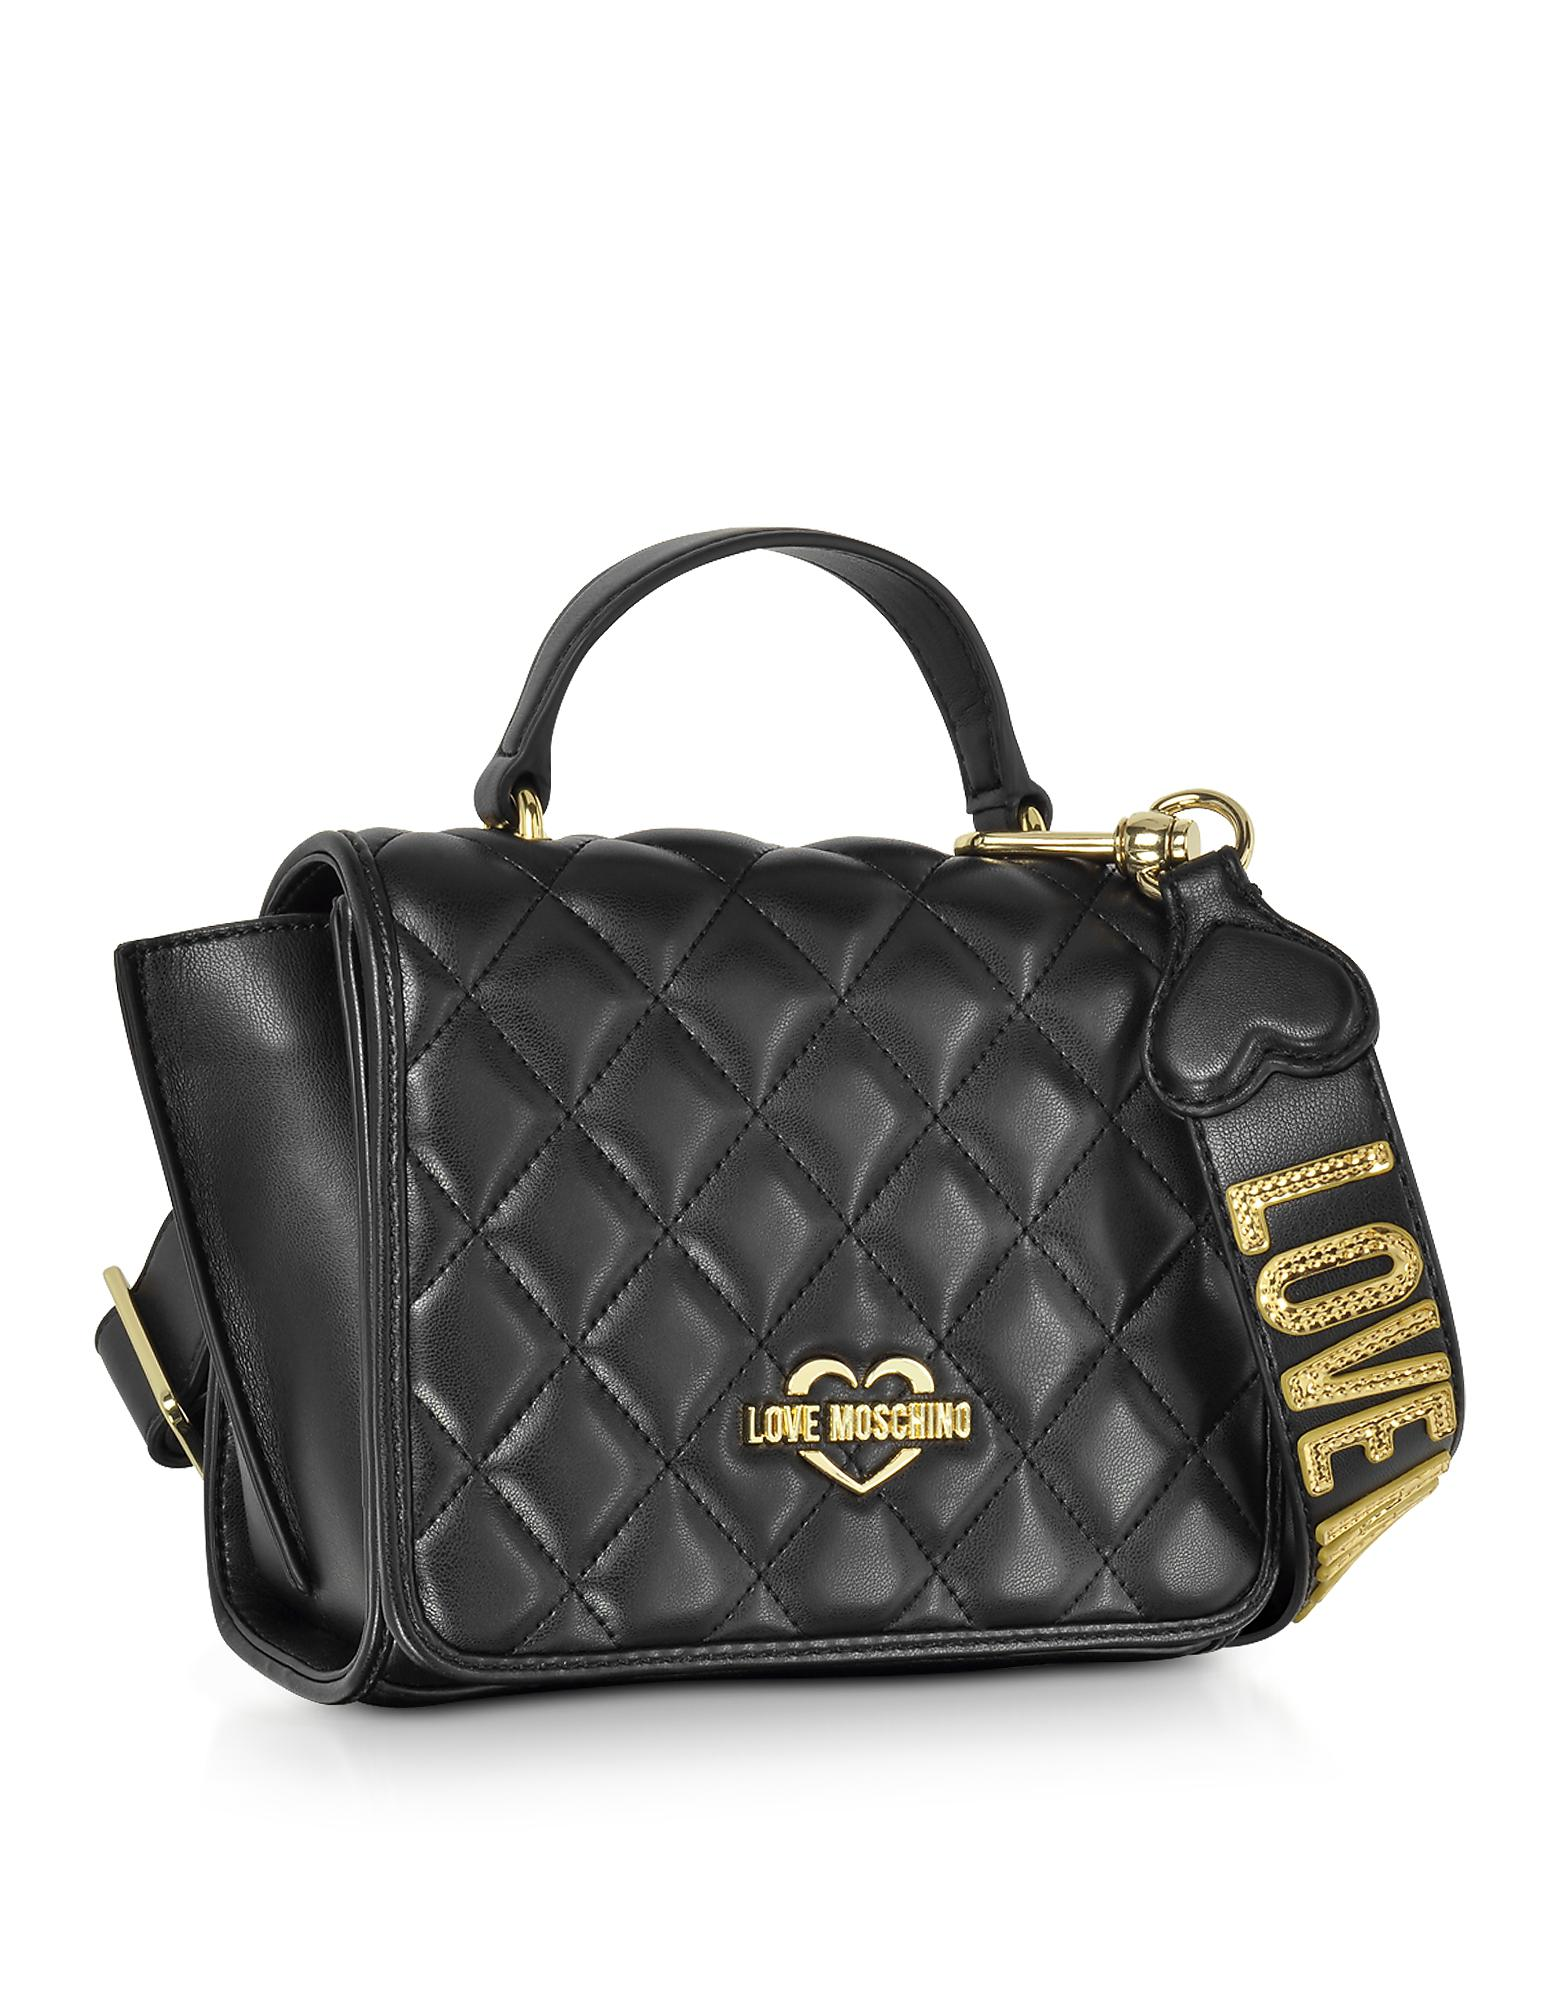 86070a965600 Lyst - Love Moschino Black Superquilted Eco-leather Small Shoulder ...